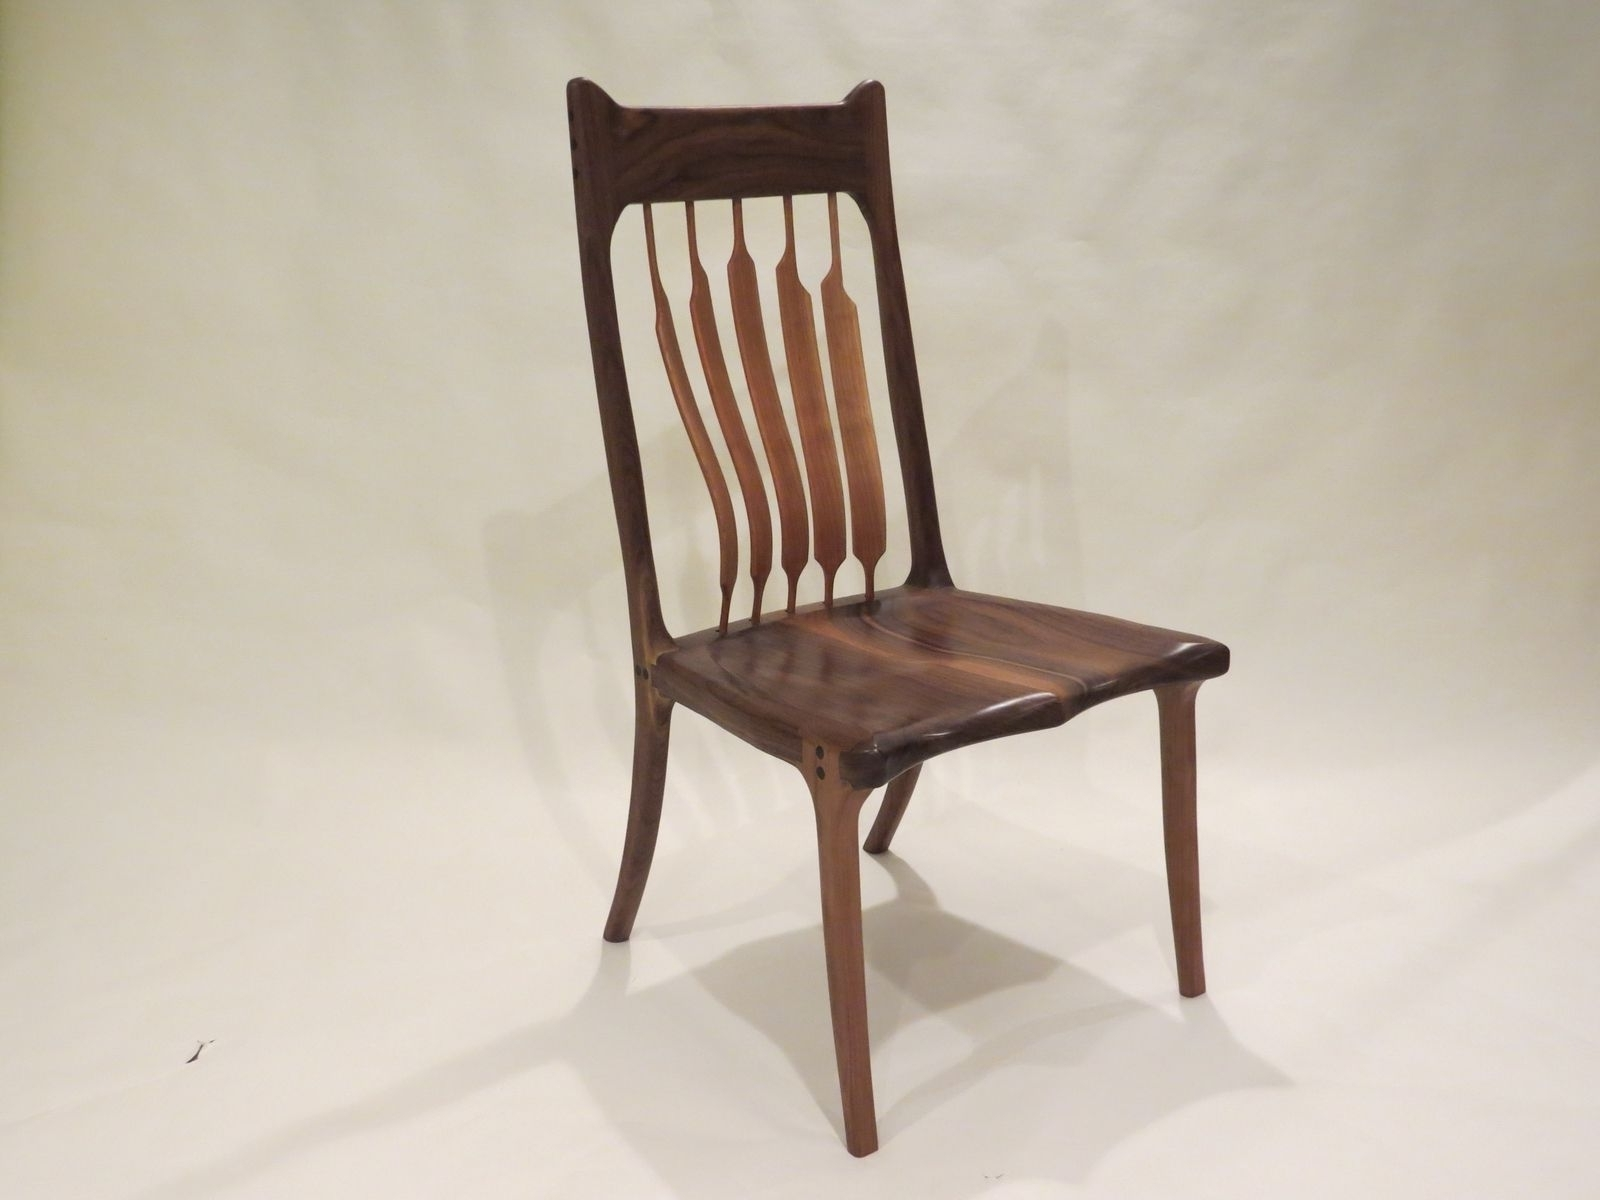 Buy A Custom High Back Dining Chair, Made To Order From Lost Creek For Newest High Back Dining Chairs (View 18 of 25)